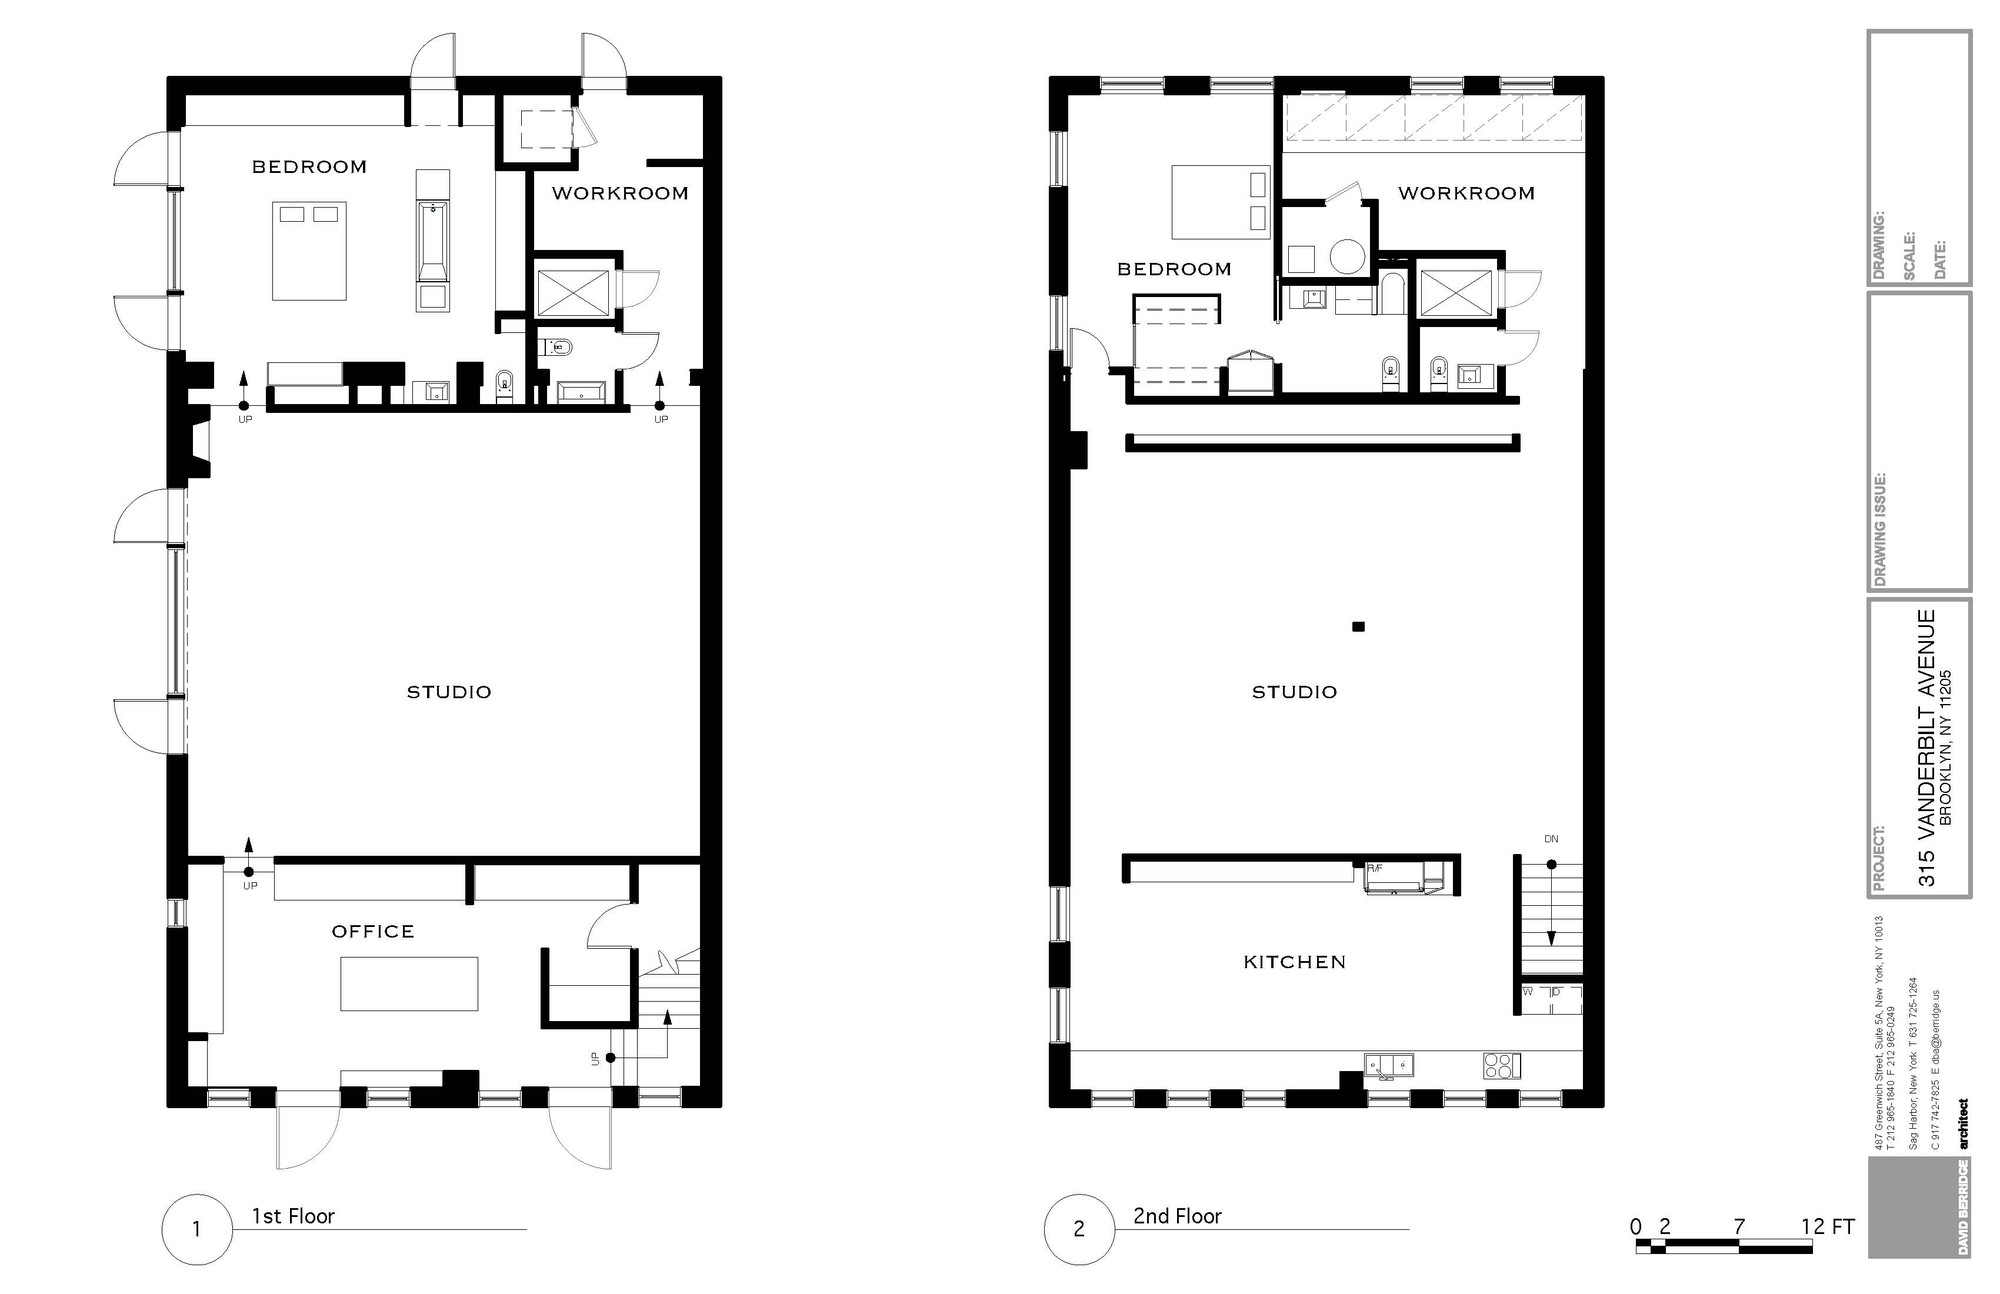 Yoga studio floor plan design for Studio layout plan